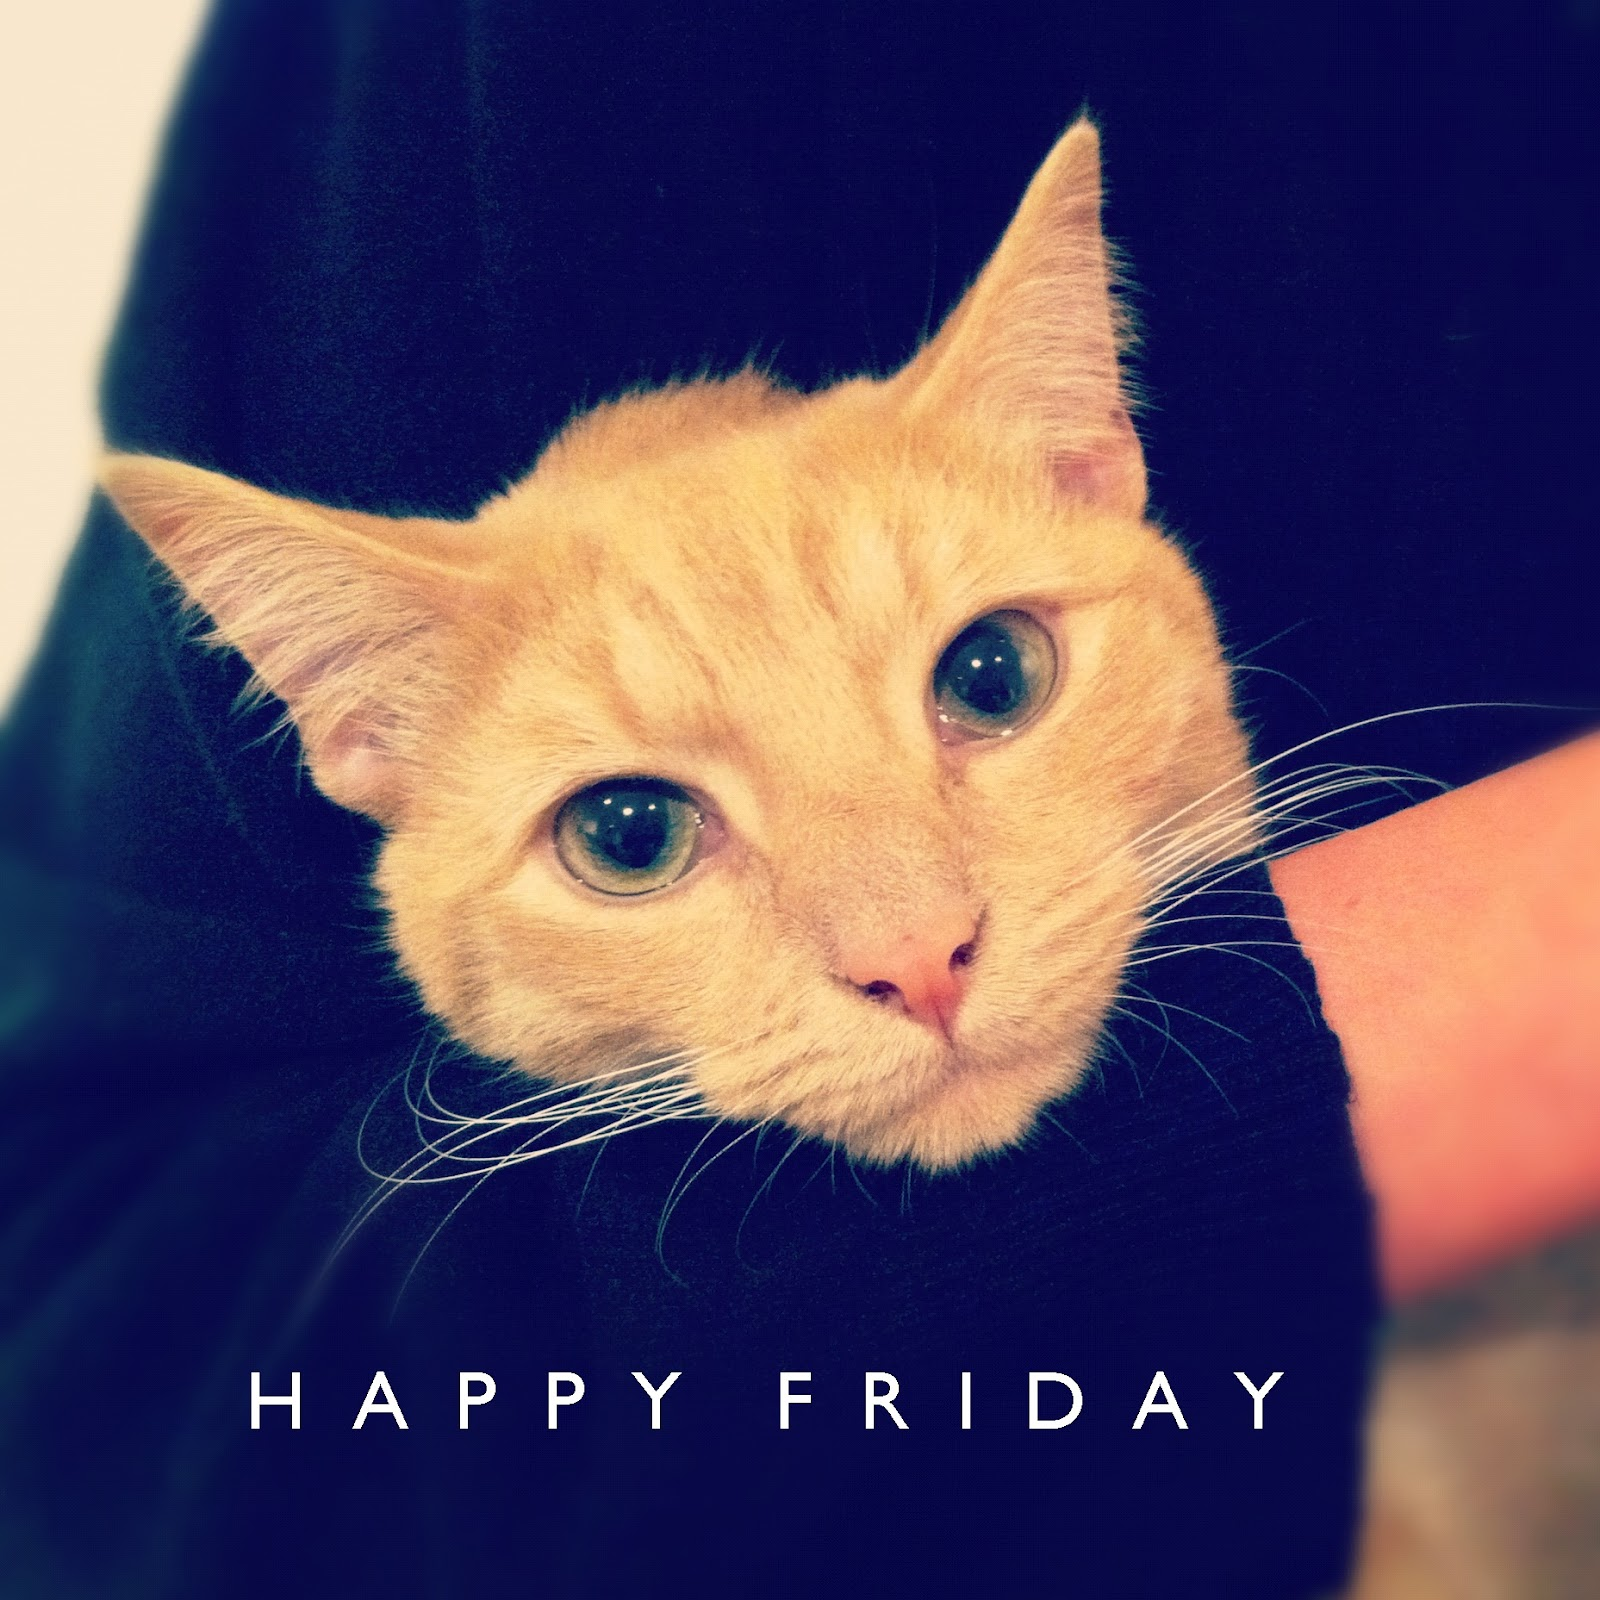 Happy Friday Cat Images - Reverse Search